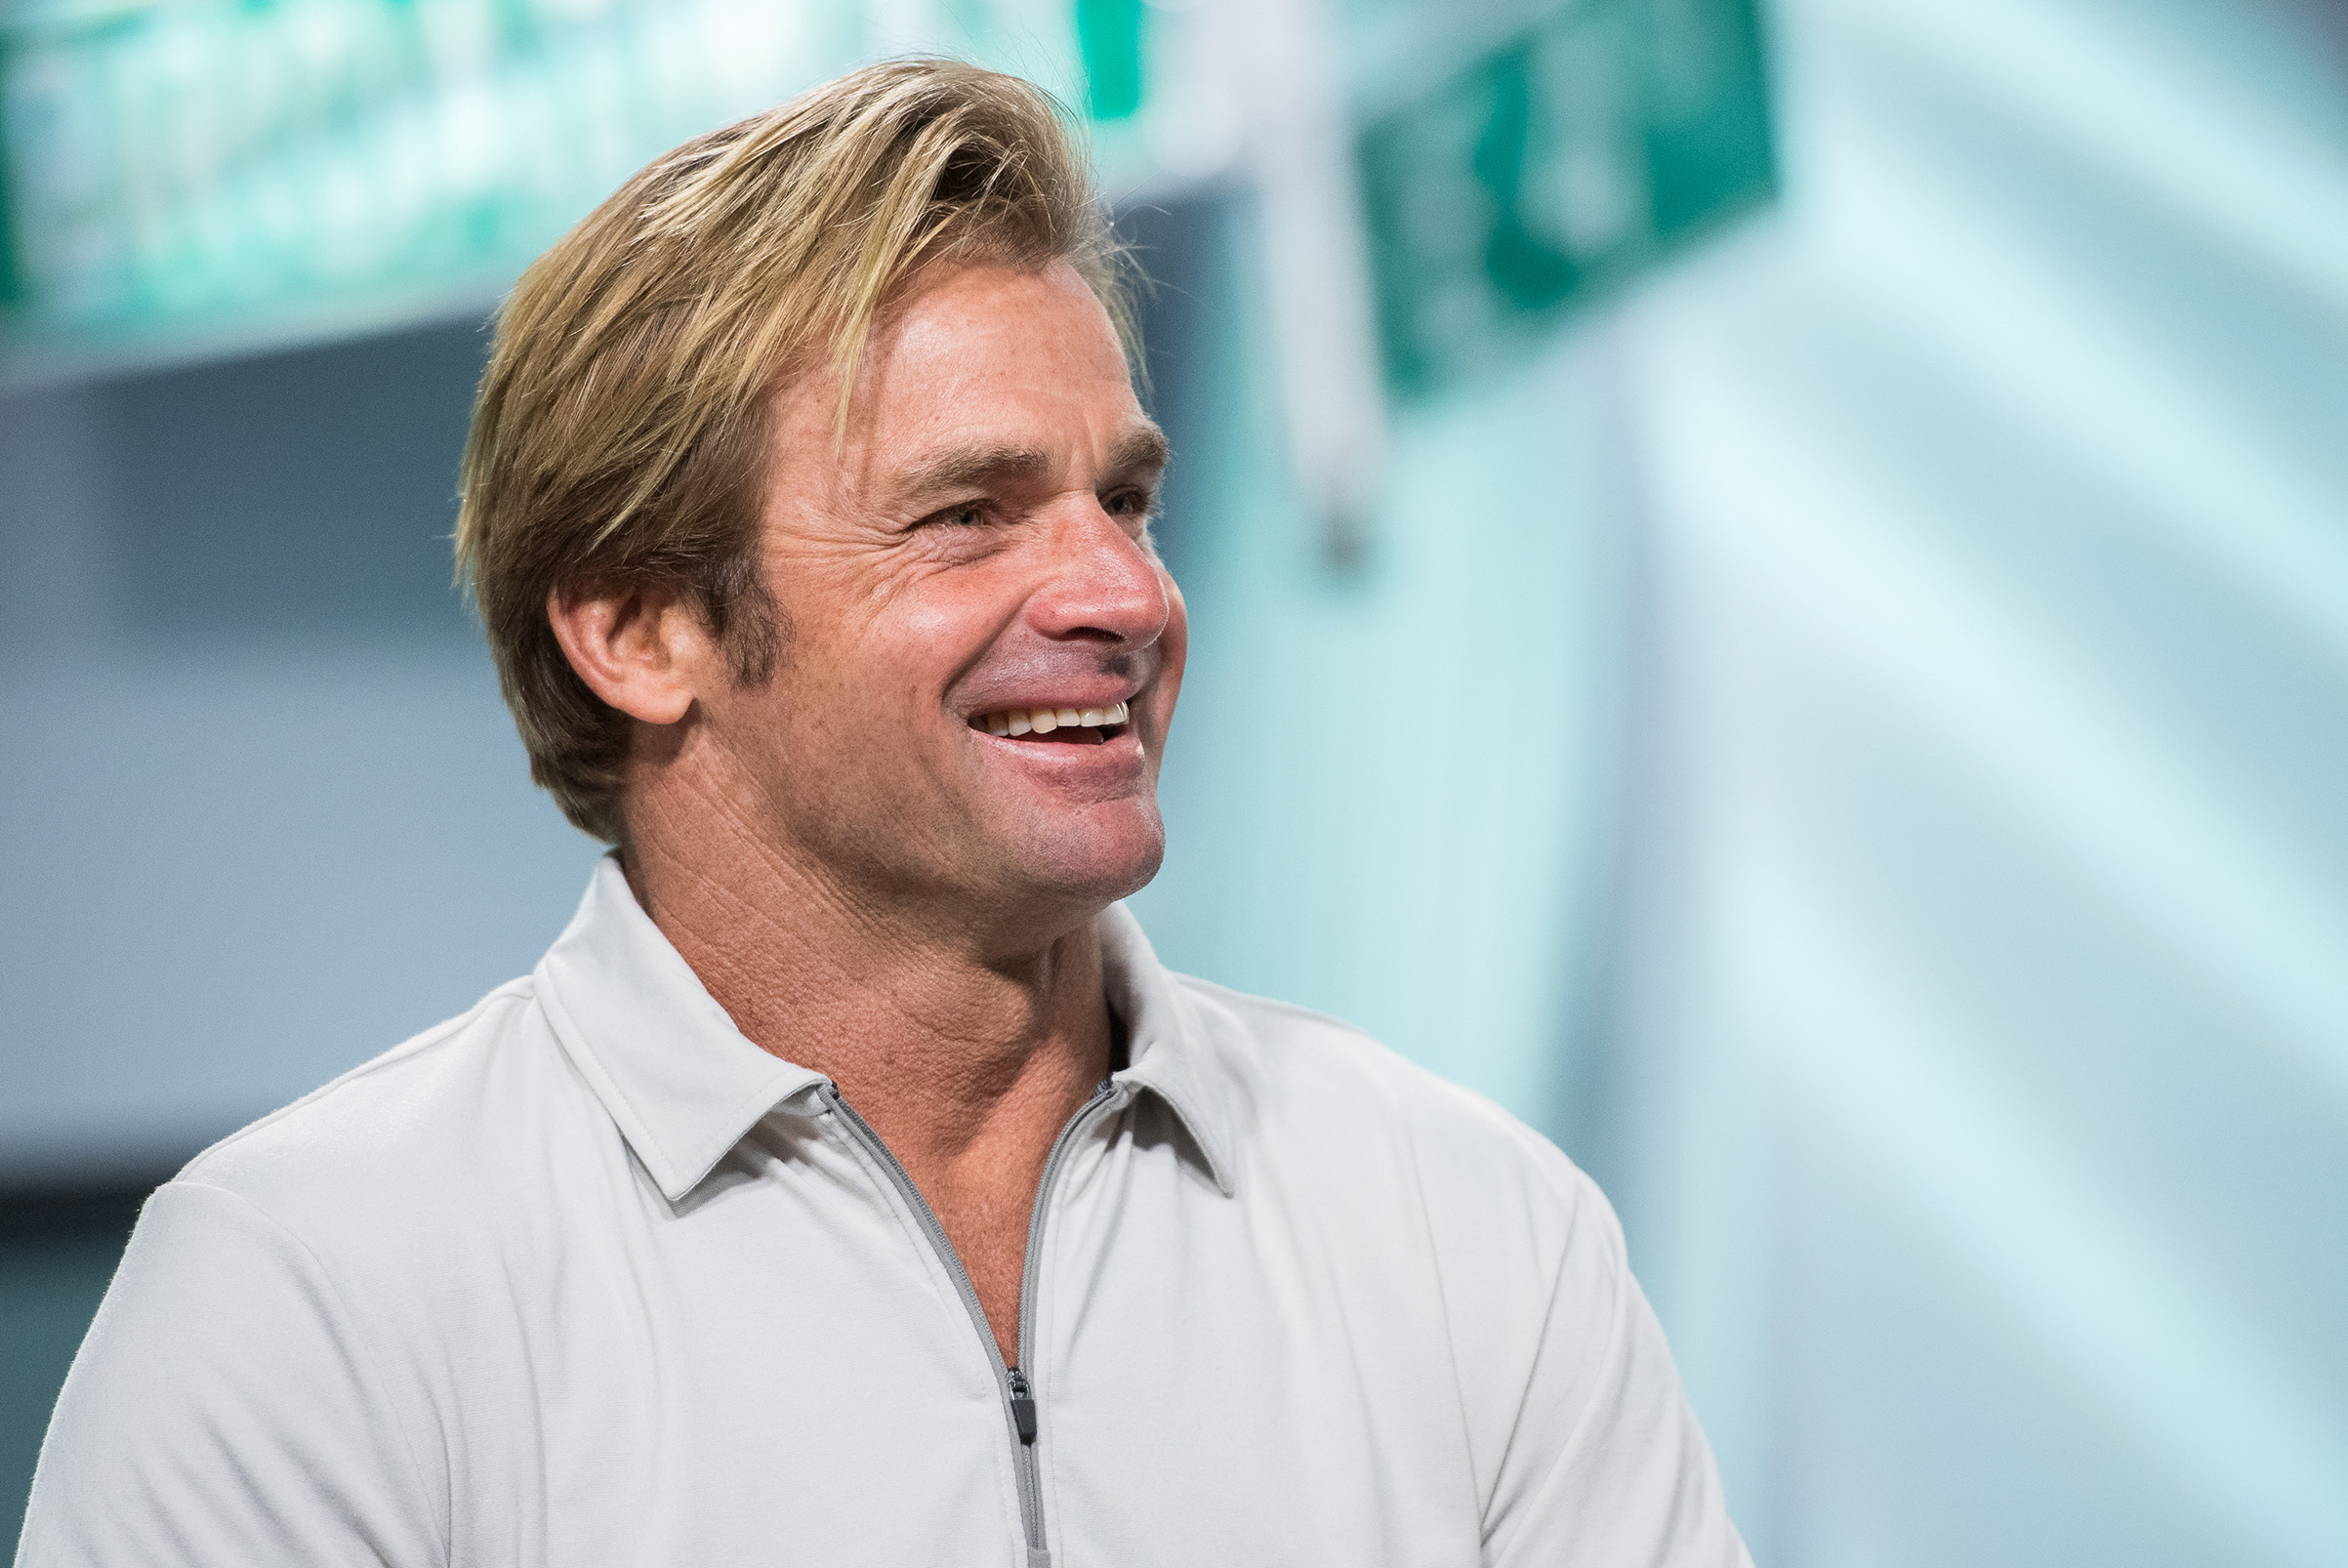 NEW YORK, NY - OCTOBER 05: Laird Hamilton visits Build Series to discuss  Take Every Wave: The Life Of Laird Hamilton  at Build Studio on October 5, 2017 in New York City. (Photo by Mike Pont/Getty Images)